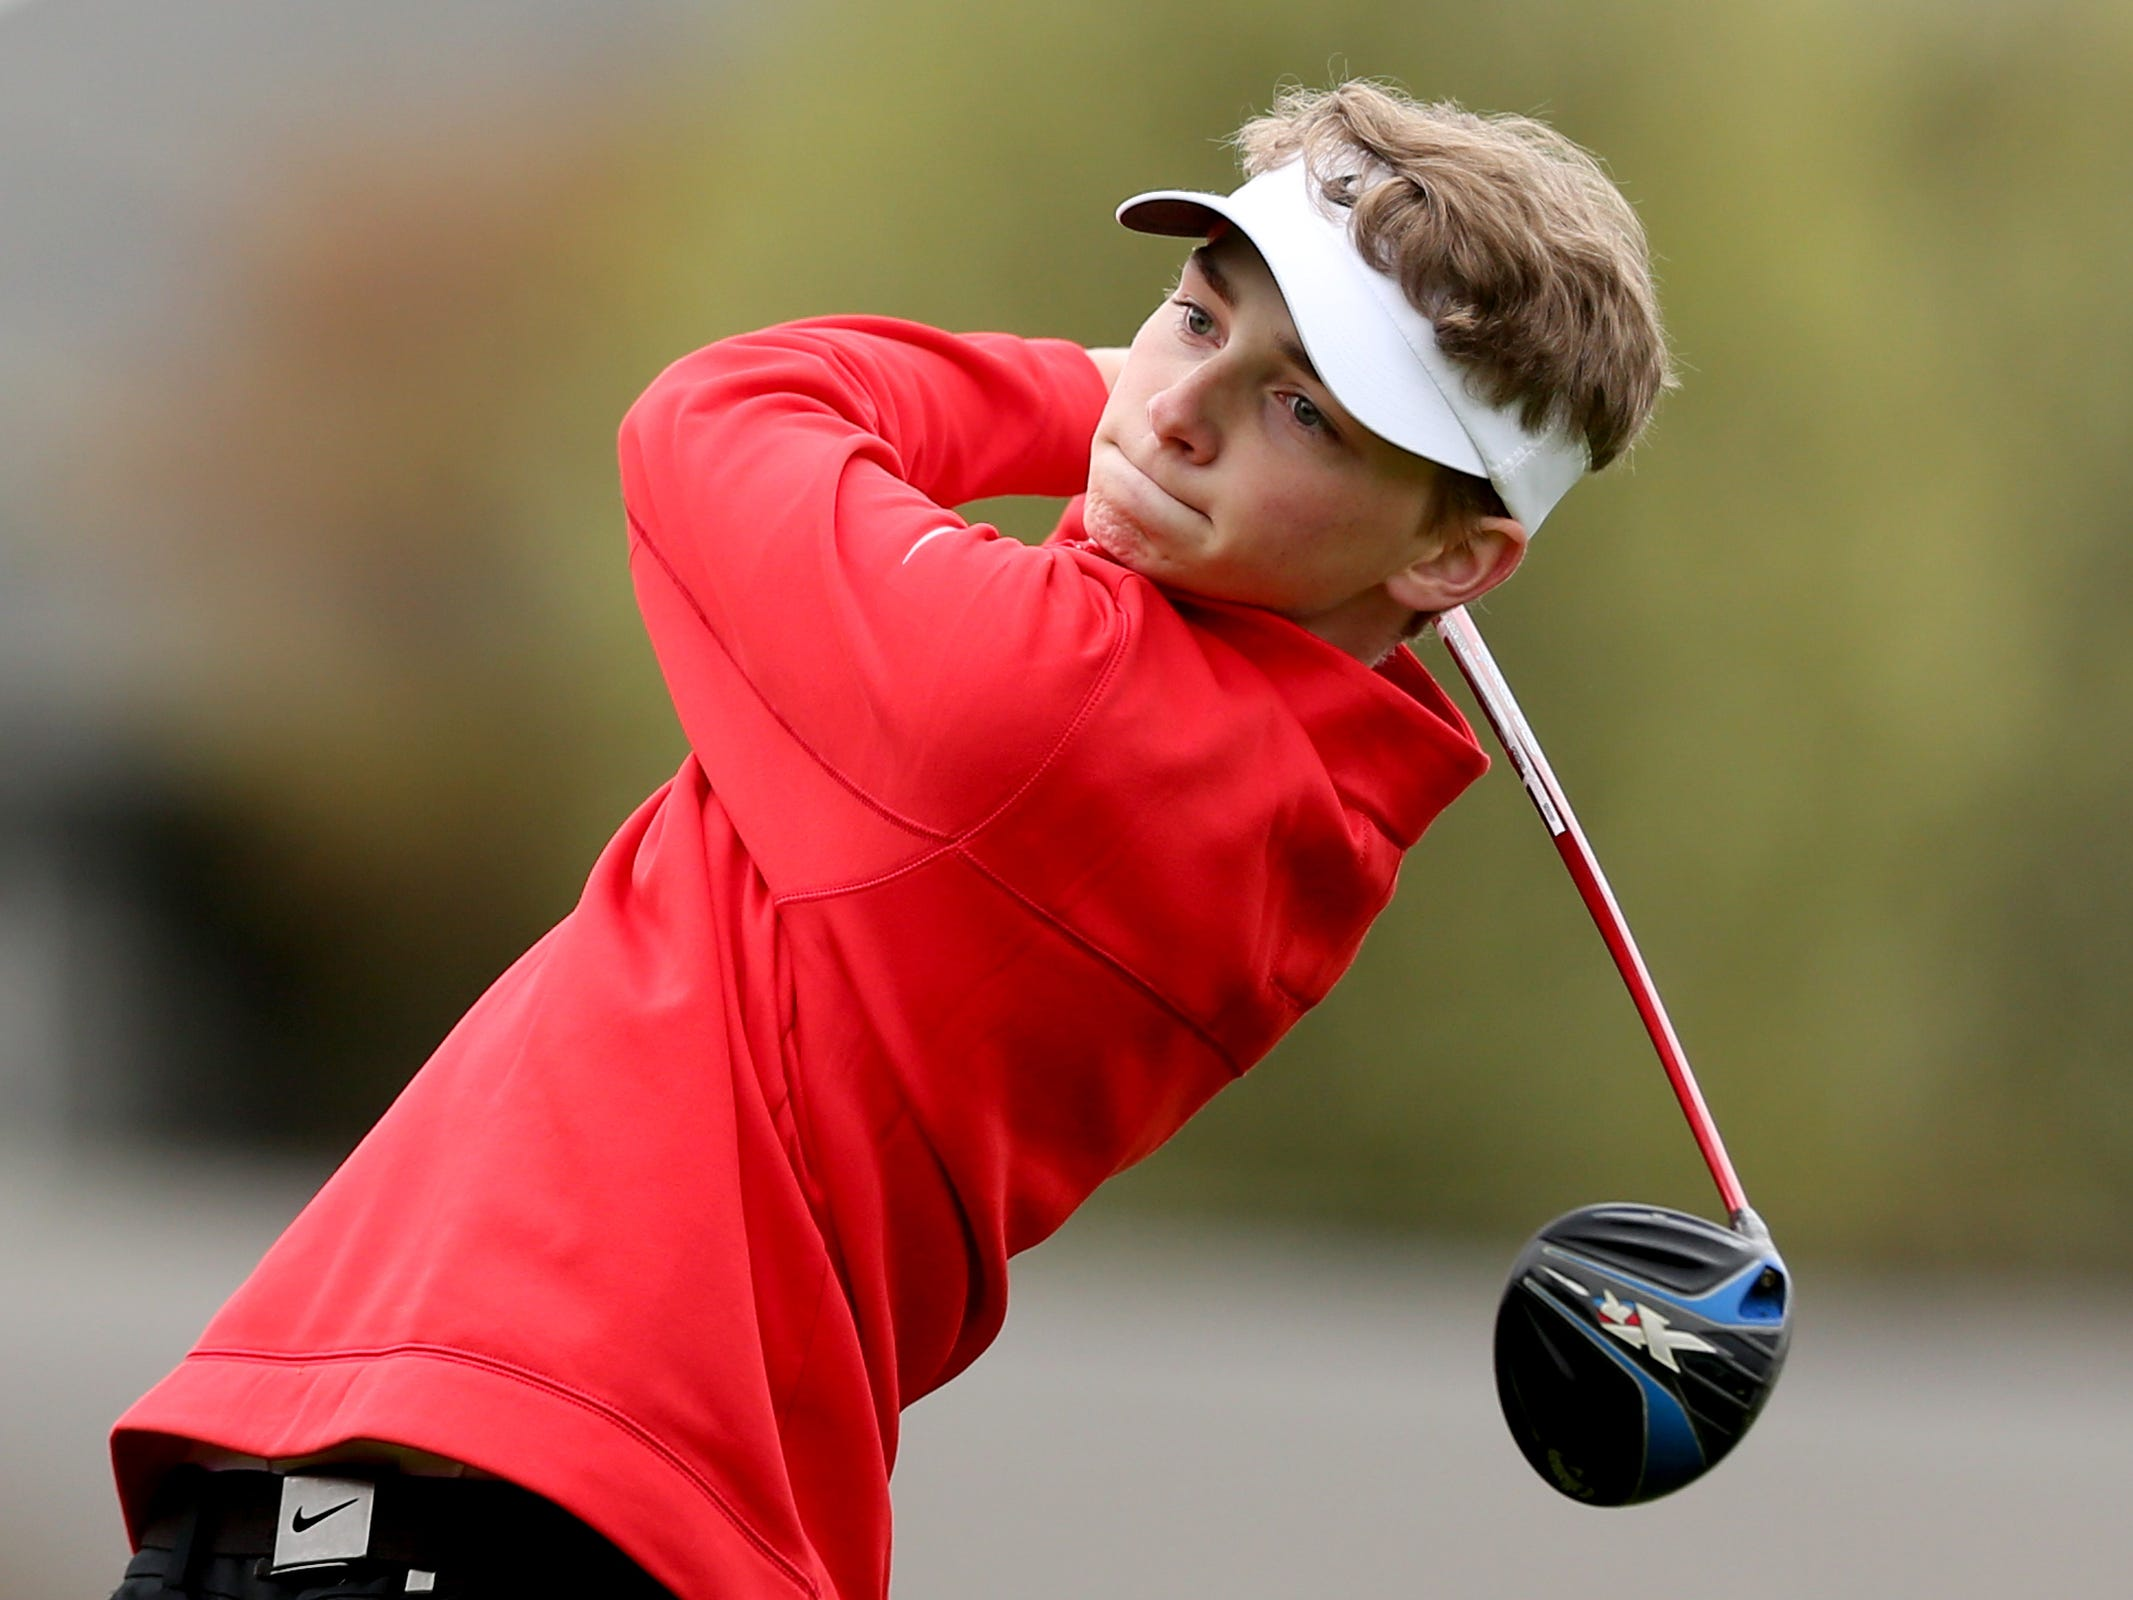 South Salem's Samuel Healy competes during a Mountain Valley Conference league high school golf match at Creekside Golf Club in Salem on April 15, 2019.